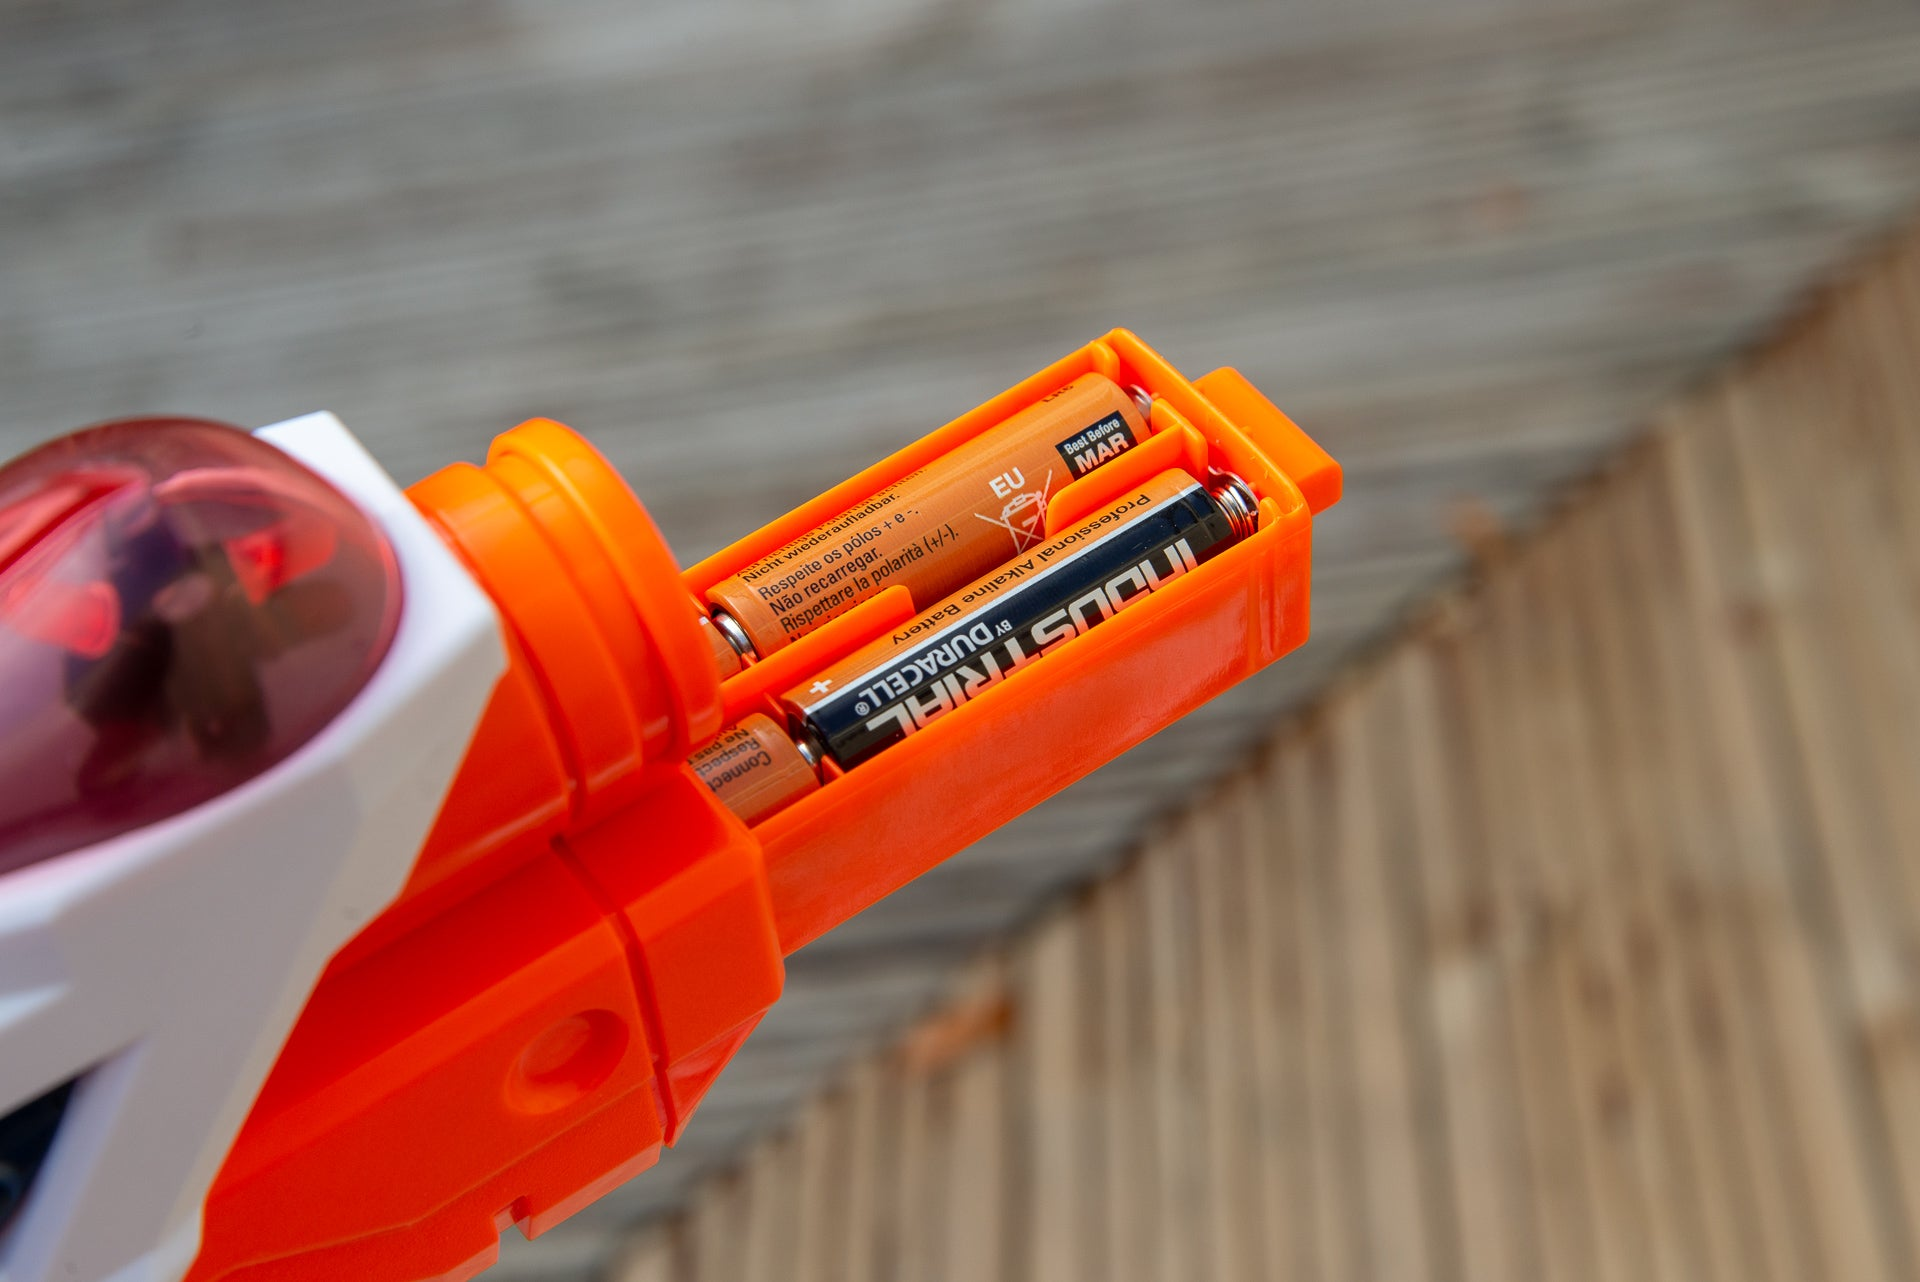 Nerf Laser Ops Pro Alphapoint batteries